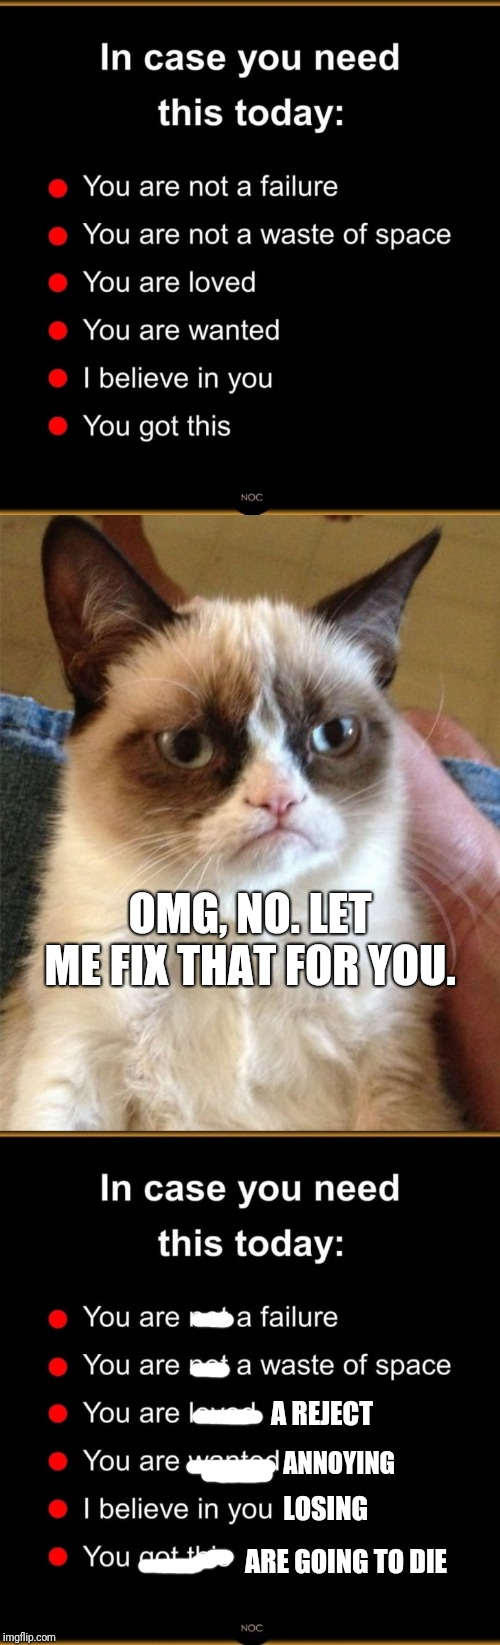 I couldn't resist :D | OMG, NO. LET ME FIX THAT FOR YOU. ARE GOING TO DIE A REJECT ANNOYING LOSING | image tagged in memes,grumpy cat,lol,funny memes,you suck,wtf | made w/ Imgflip meme maker